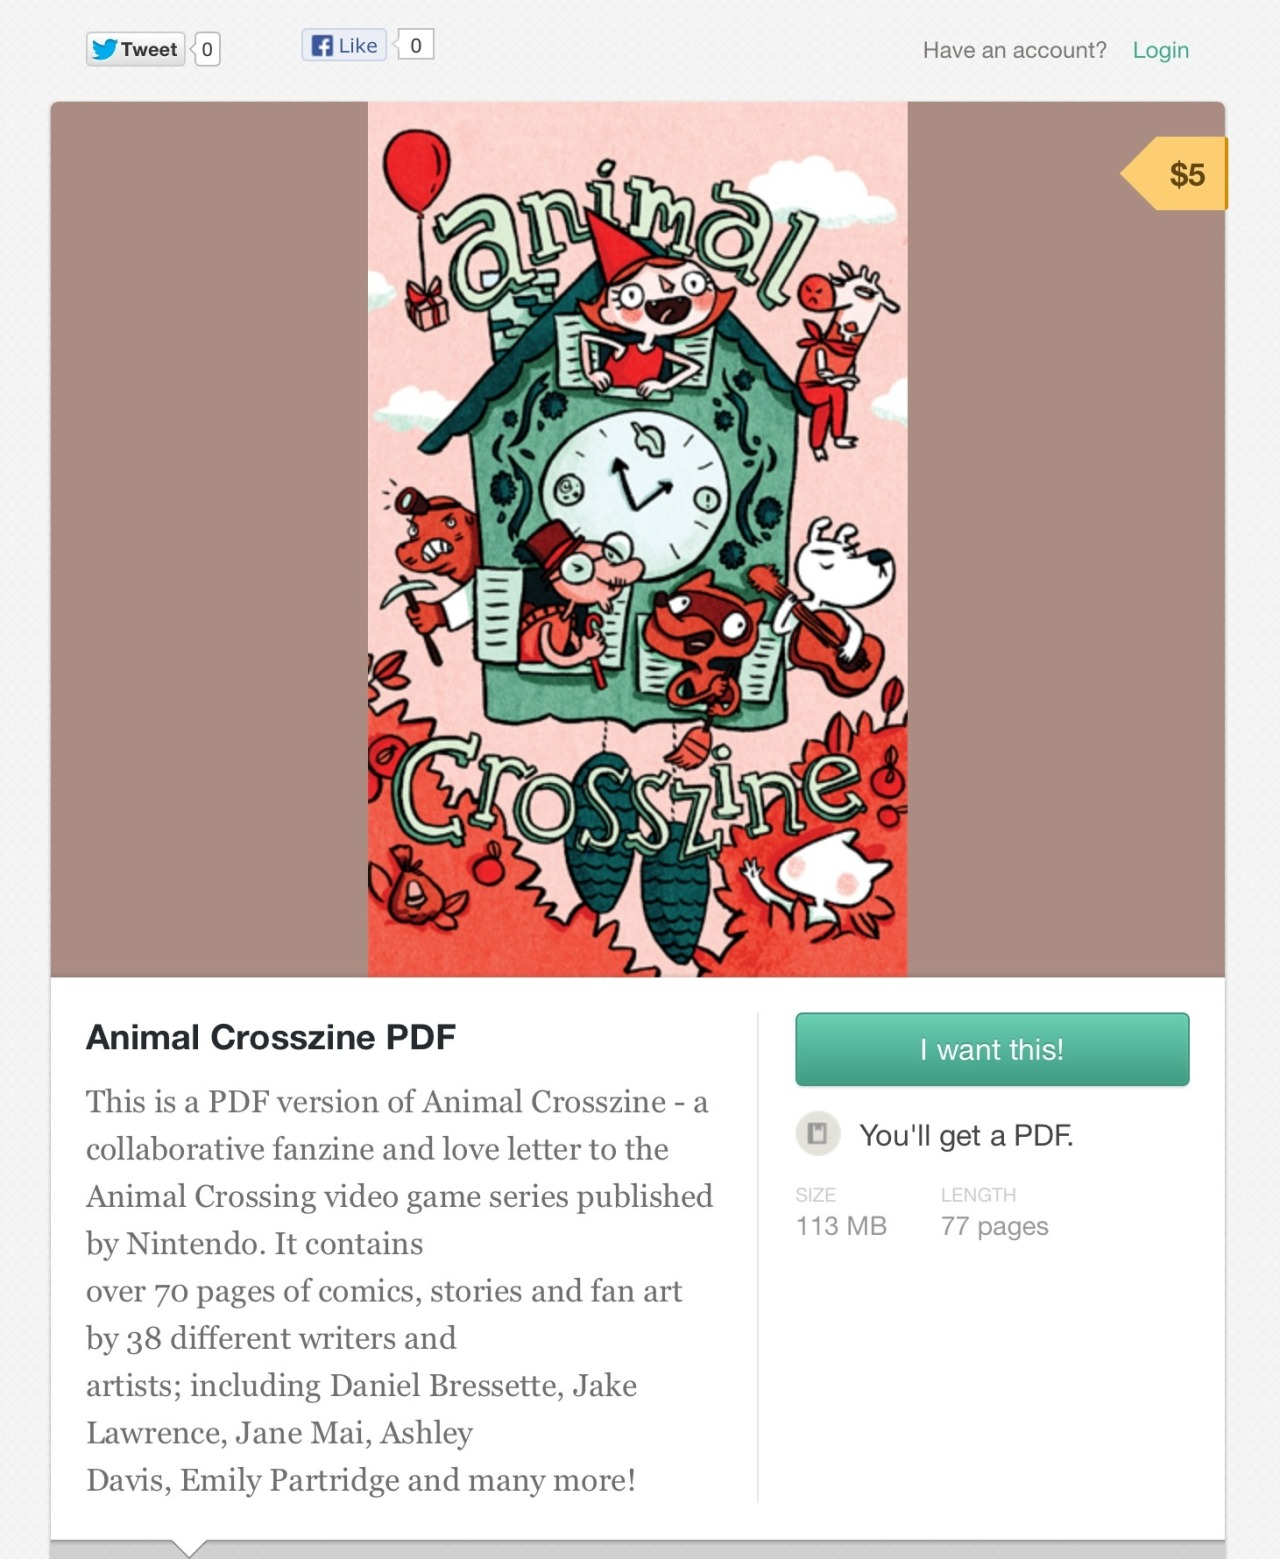 animalcrosszine:  Hi, friends!You can now buy a digital copy of Animal Crosszine on Gumroad.  You can view the PDF on your computer or iPad (It looks pretty sharp on retina display!). A lot of hard work went into making this project possible. Thanks to everyone who took the time to contribute something. We hope you like it! Soon, we are going to be posting all of the submissions that we could not include in the printed book due to space limitations. There is still more great art to be seen! As of this past week, the pre-order period for the printed book has ended. There will still be a few more copies available in late-May, but we decided to close pre-orders because the amount received so far was starting to become unmanageable. We will make a post about it some time after we get back from TCAF next weekend. Thanks! Justin and Meghan, Co-Editors  Get your copy of the Animal Crosszine PDF!